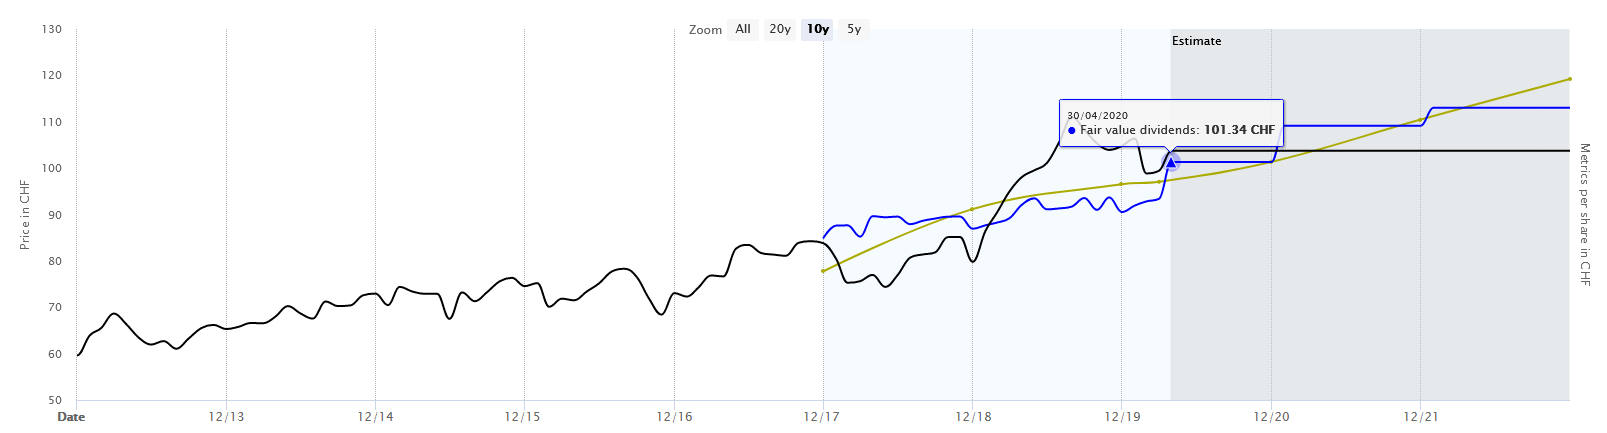 Historic Fair Value of Nestle Stock Over Recent Years